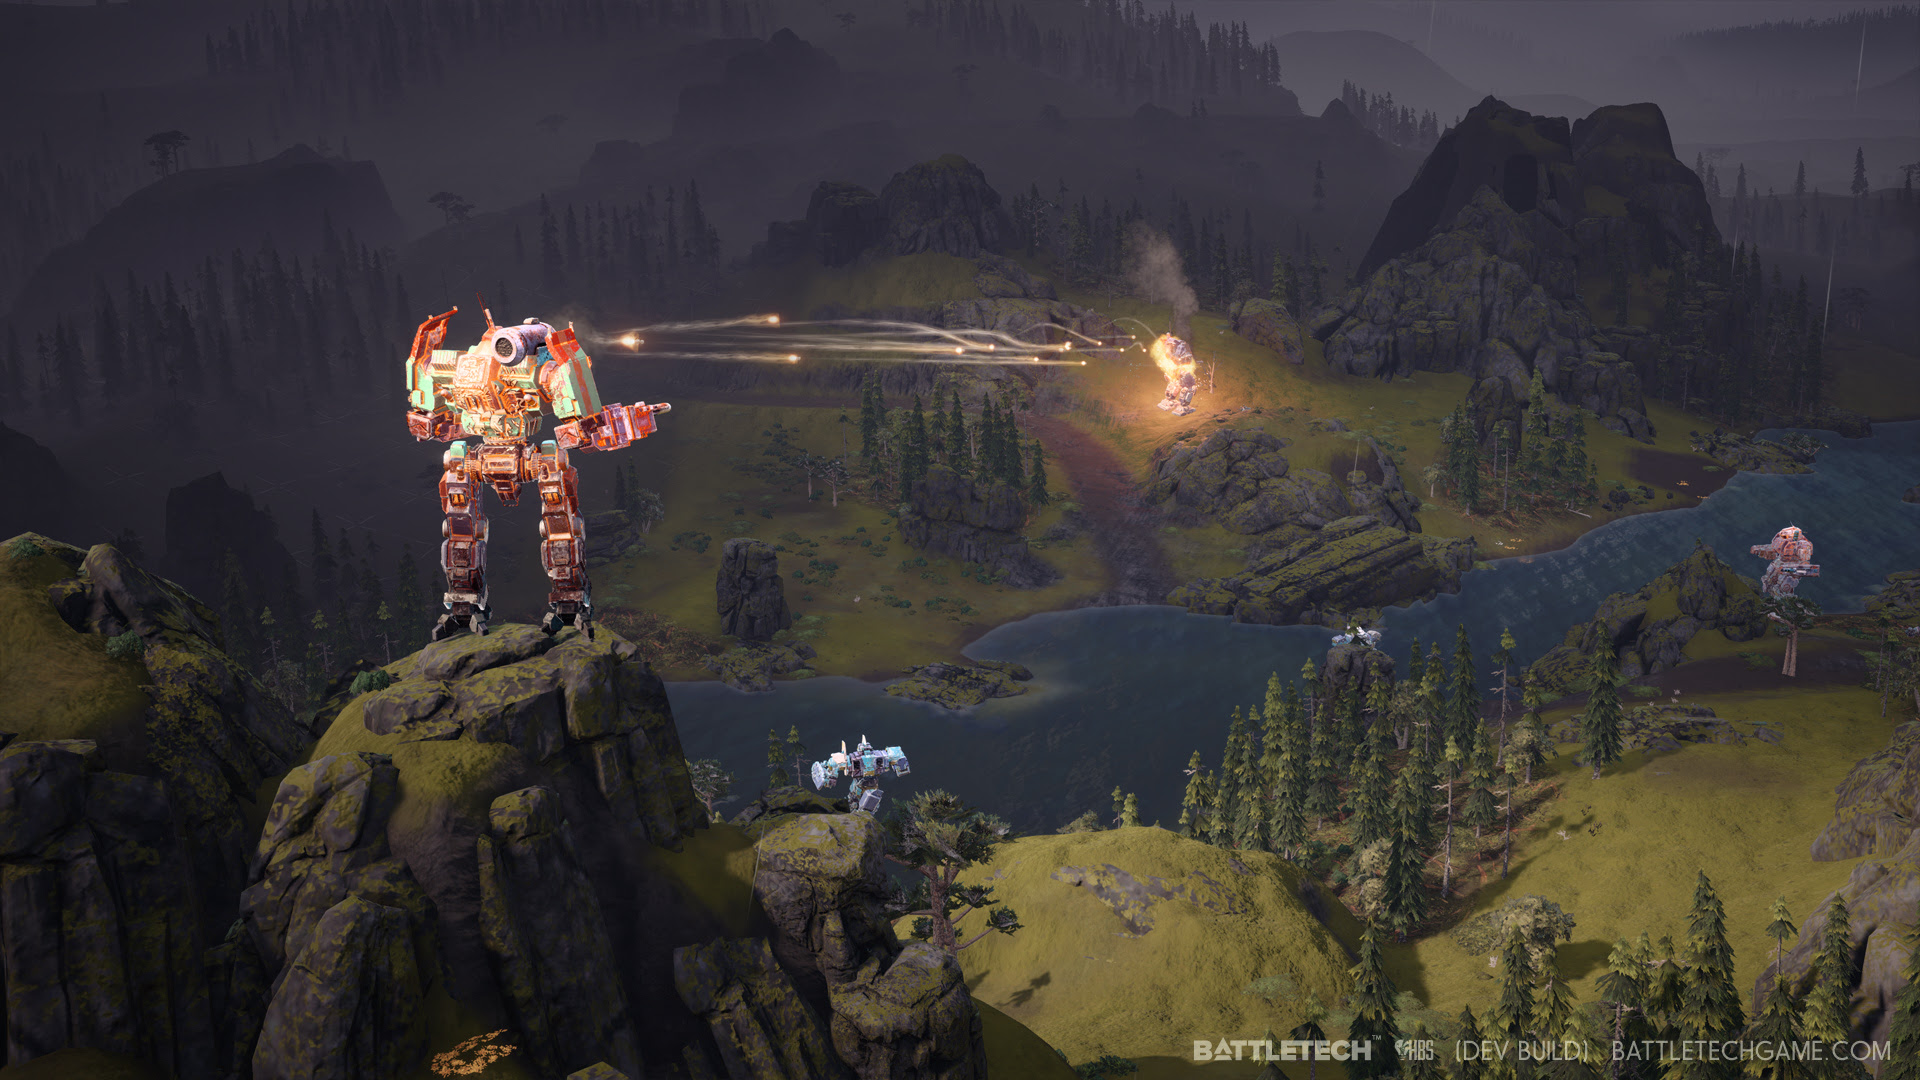 Turn Based Tactical Mech Game Battletech To Release This Year On